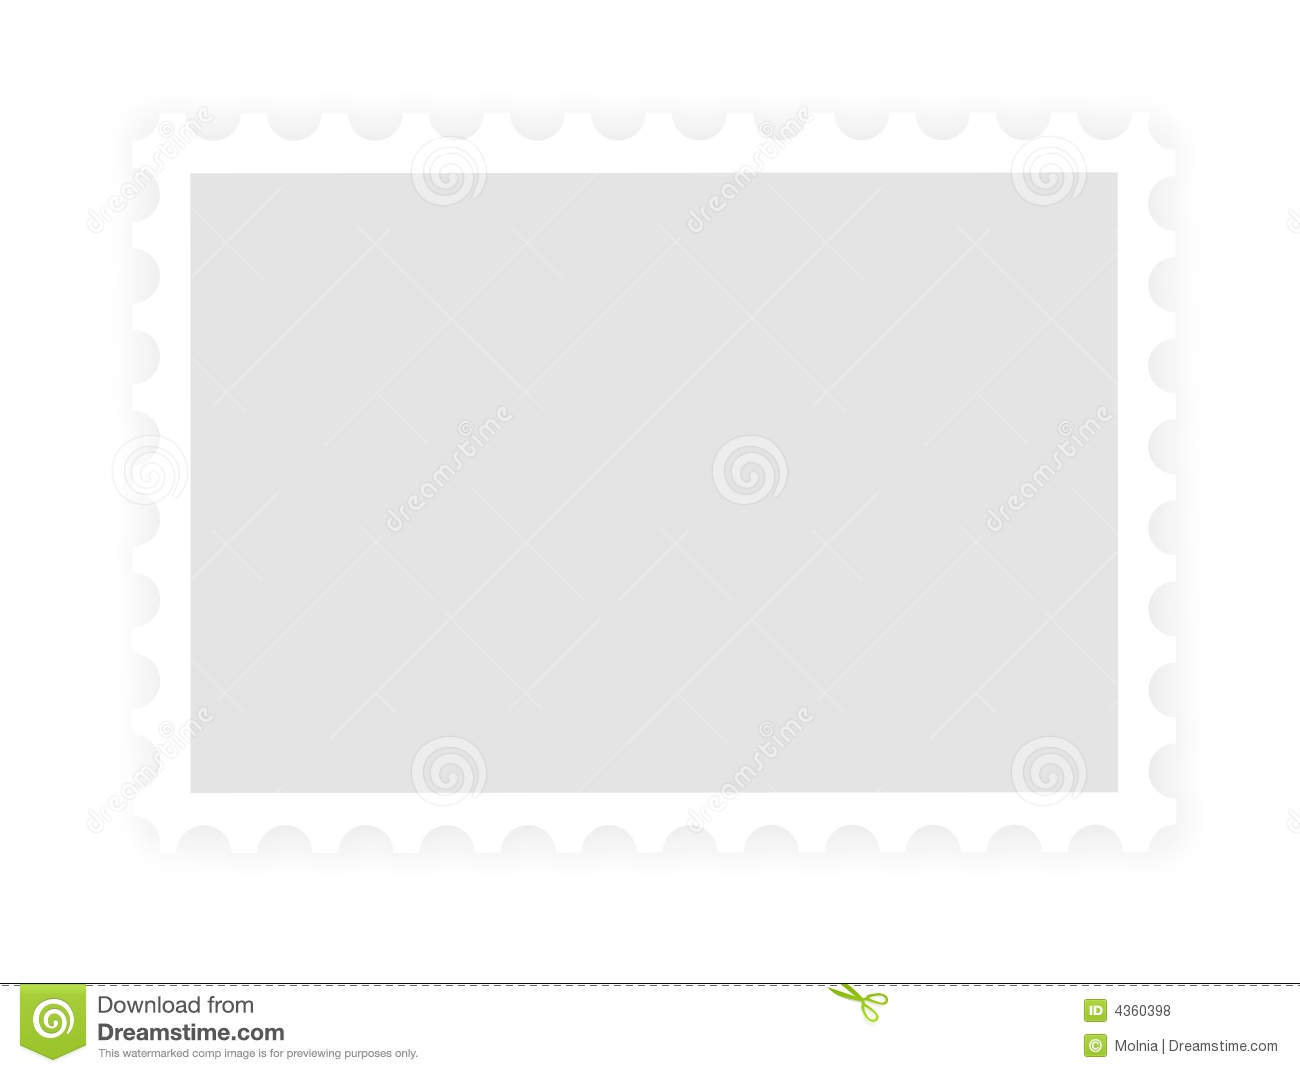 Old post mark frame stock illustration. Illustration of moments ...